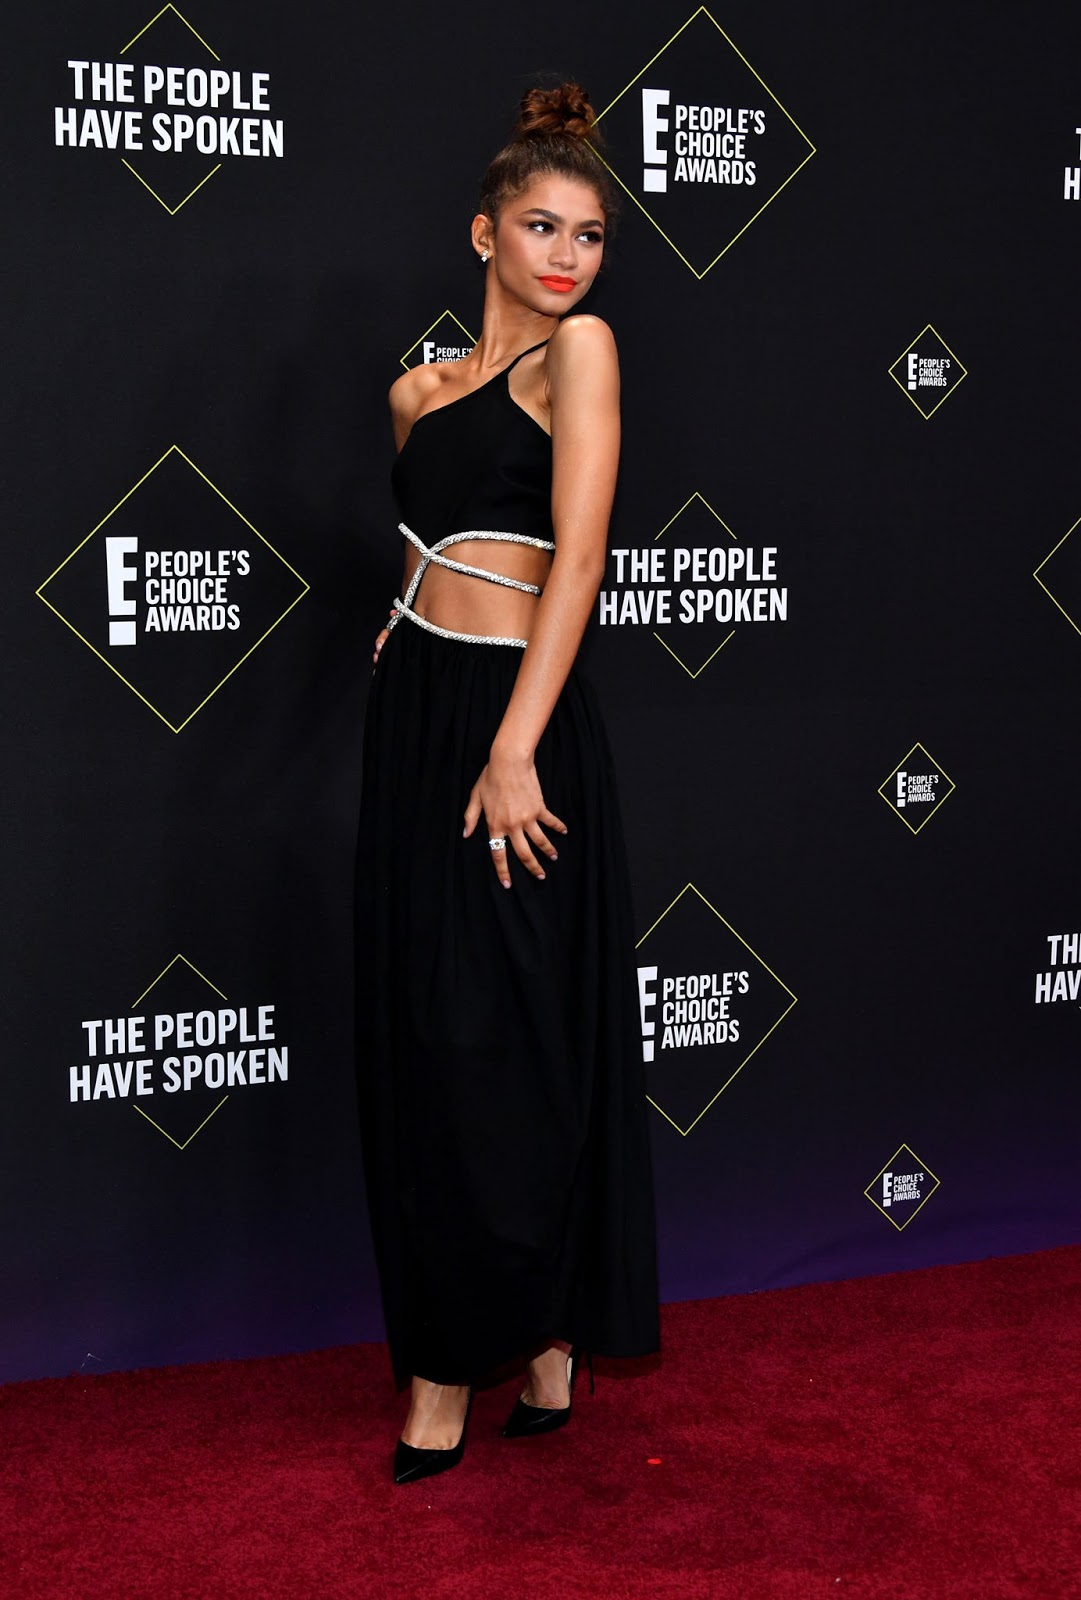 Zendaya Stuns in All-Black With Sparkling Details + Sky-High Heels at People's Choice Awards 2019